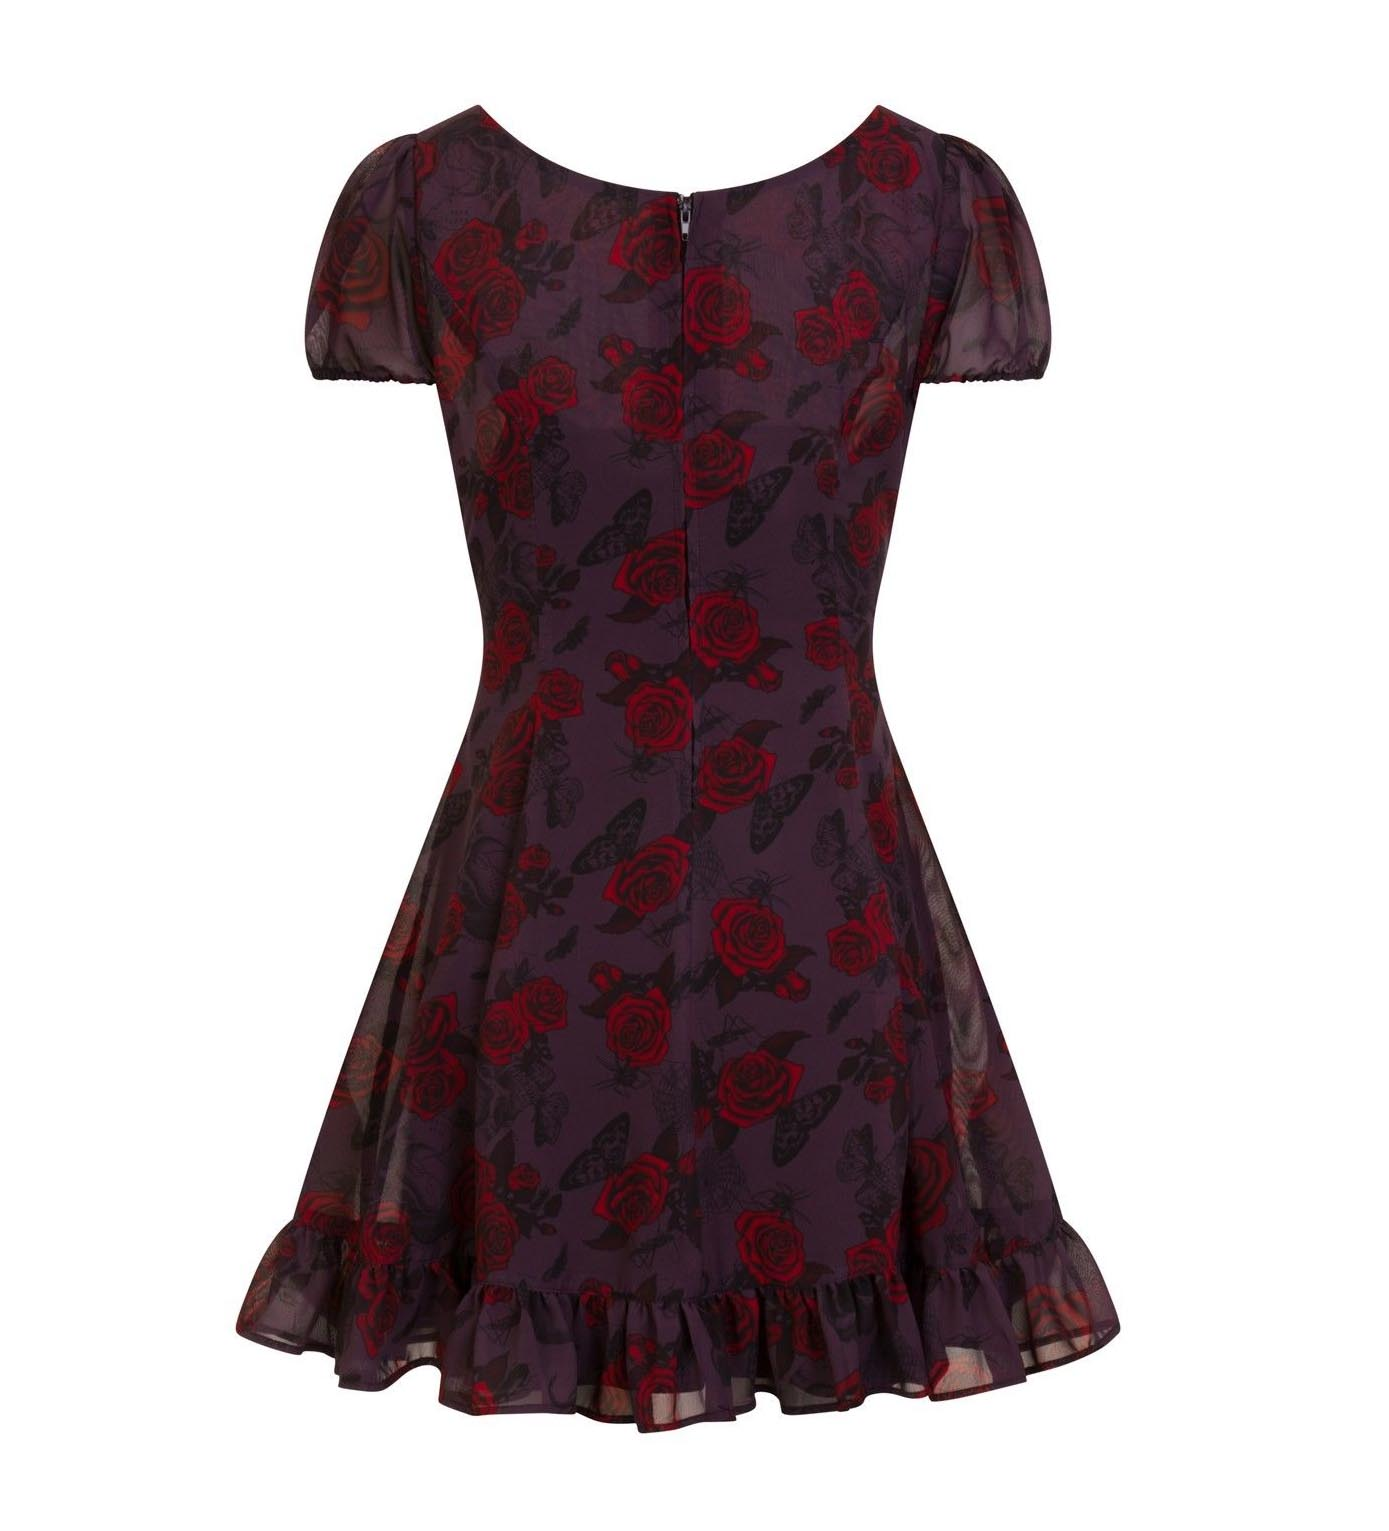 Hell-Bunny-Goth-Floaty-Mini-Dress-BUGS-amp-ROSES-Skulls-Butterfly-Purple-All-Sizes thumbnail 49